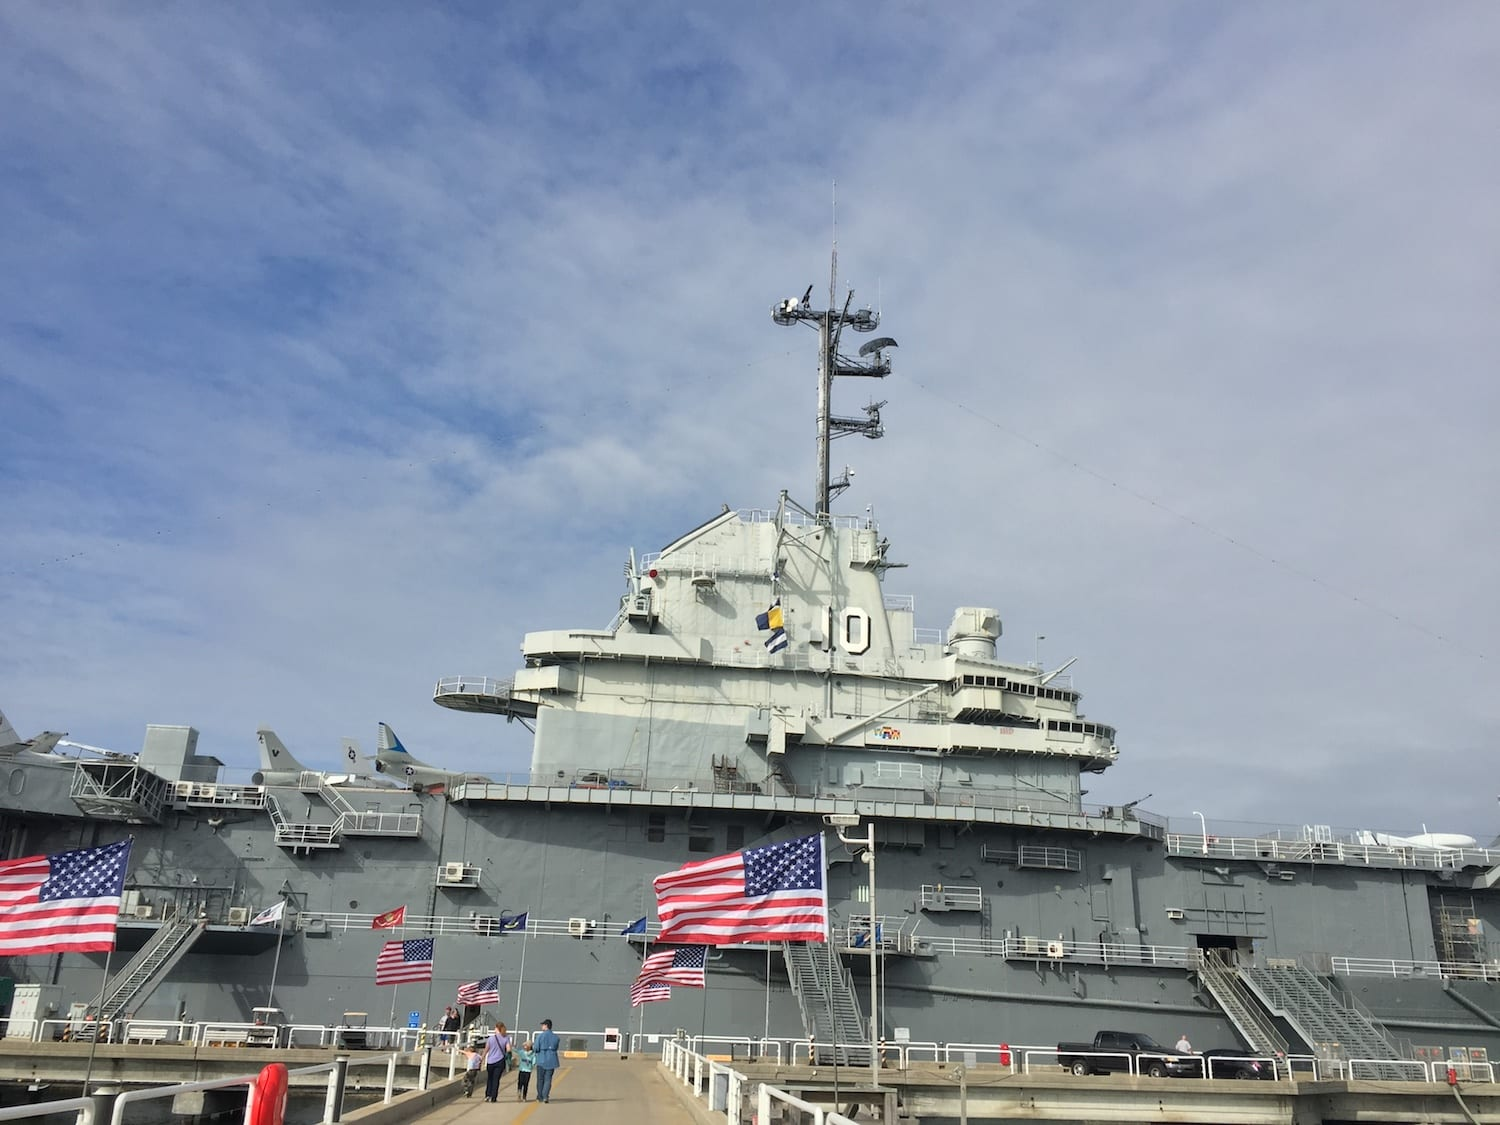 USS Yorktown Patriots Point Charleston South Carolina